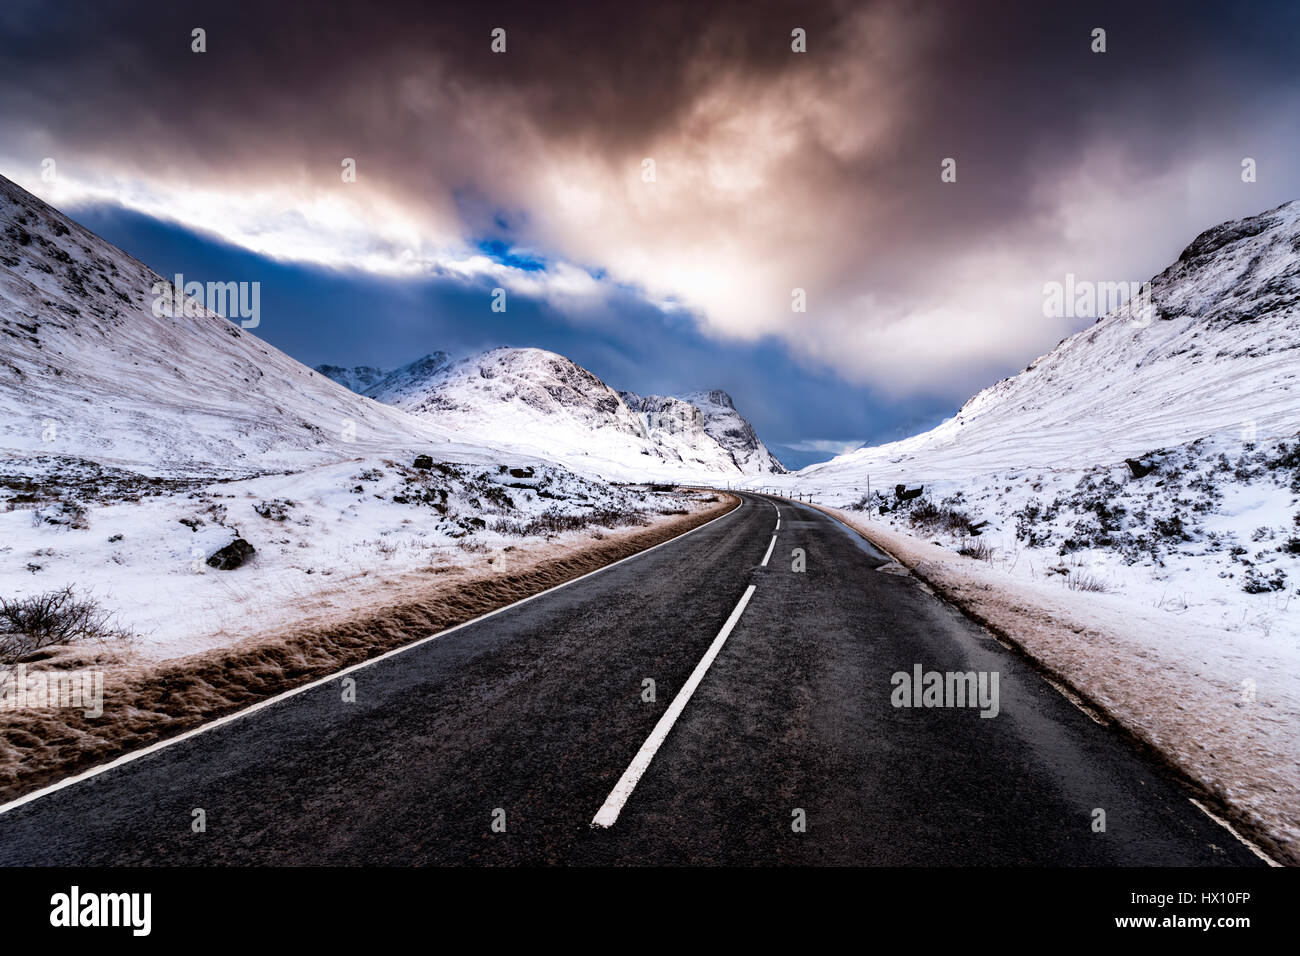 A92 Road High Resolution Stock Photography and Images - Alamy